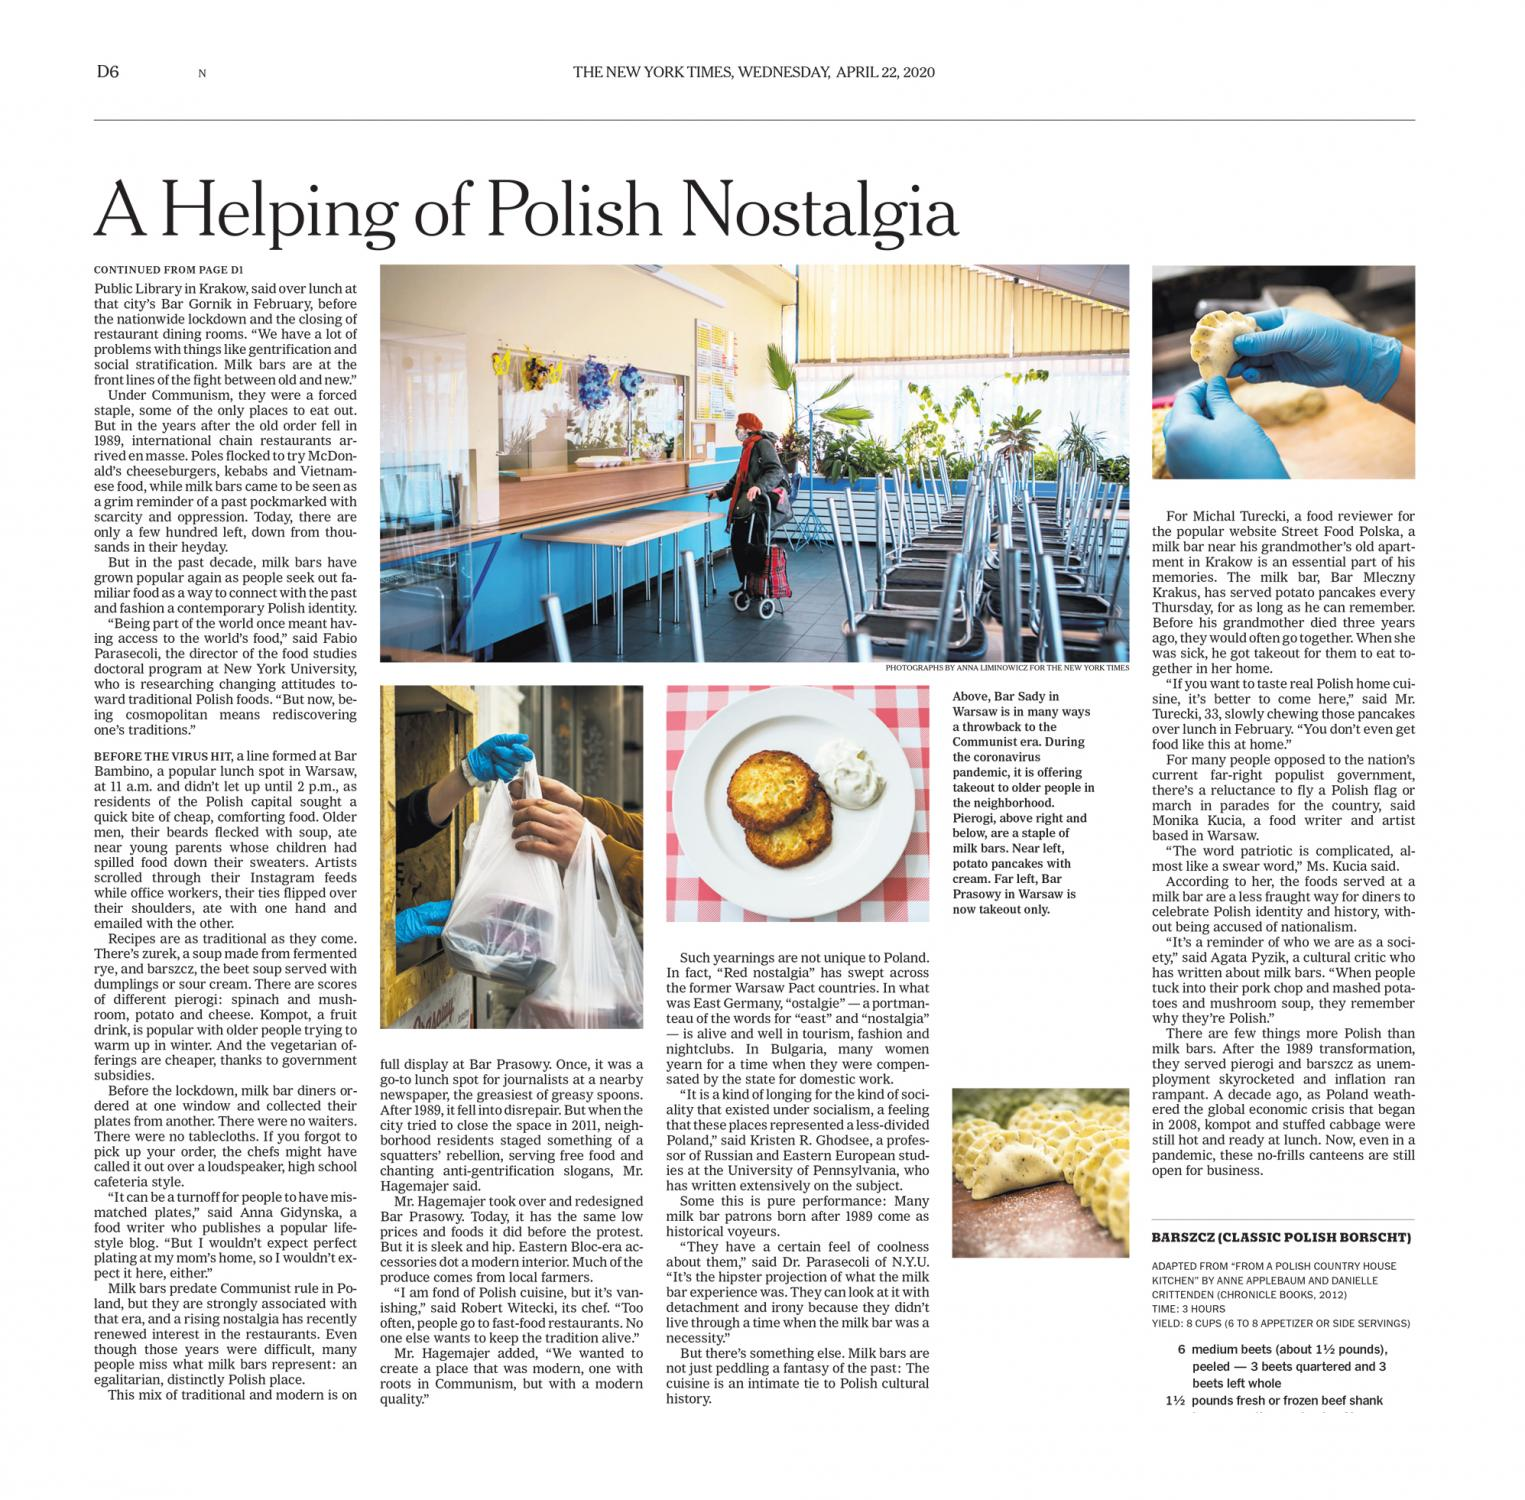 Art and Documentary Photography - Loading nytimes_polish_milk_bars_anna_liminowicz_003.jpg